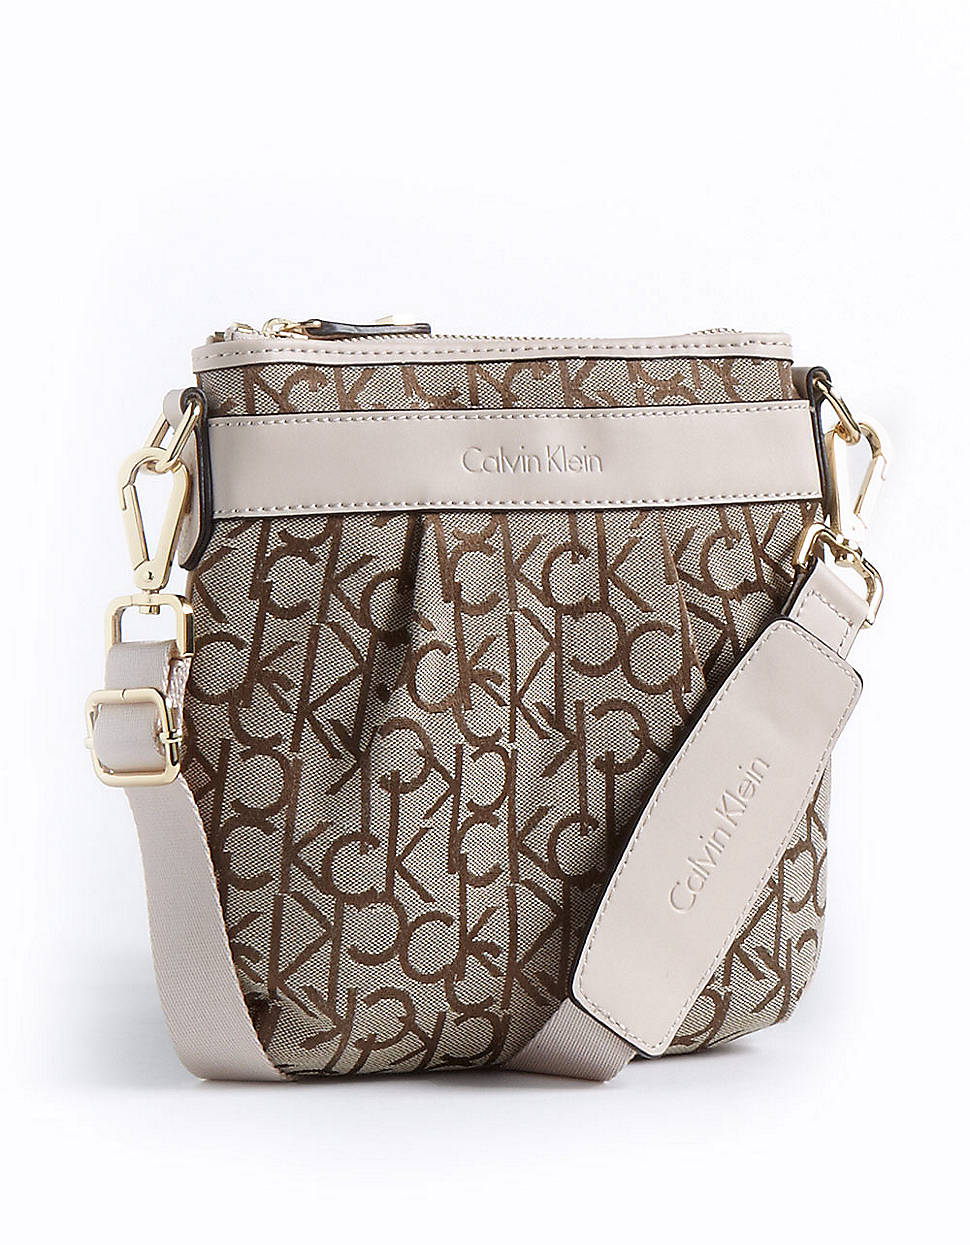 Gallery Previously Sold At Lord Taylor Women S Calvin Klein Crossbody